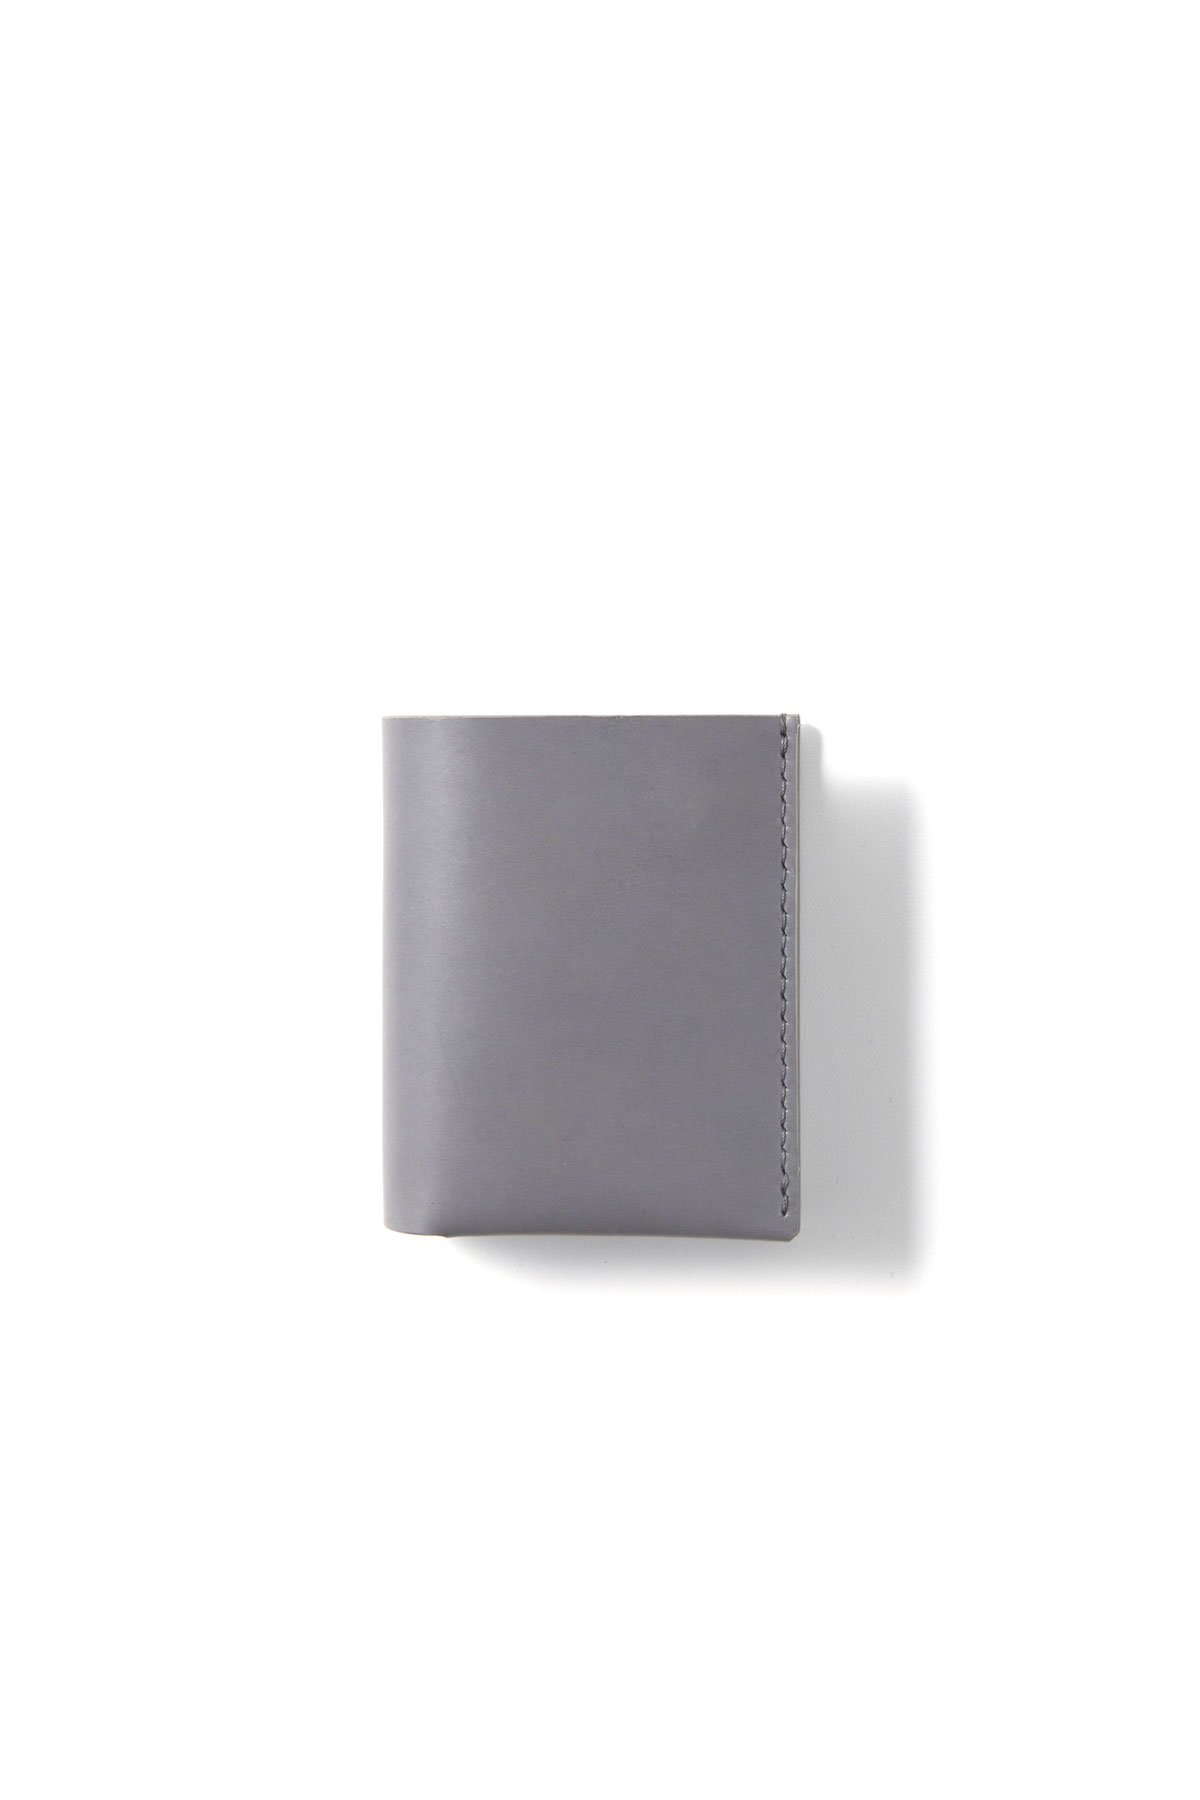 Blankof : WCL 03 T1 5 Slot Wallet (Grey)